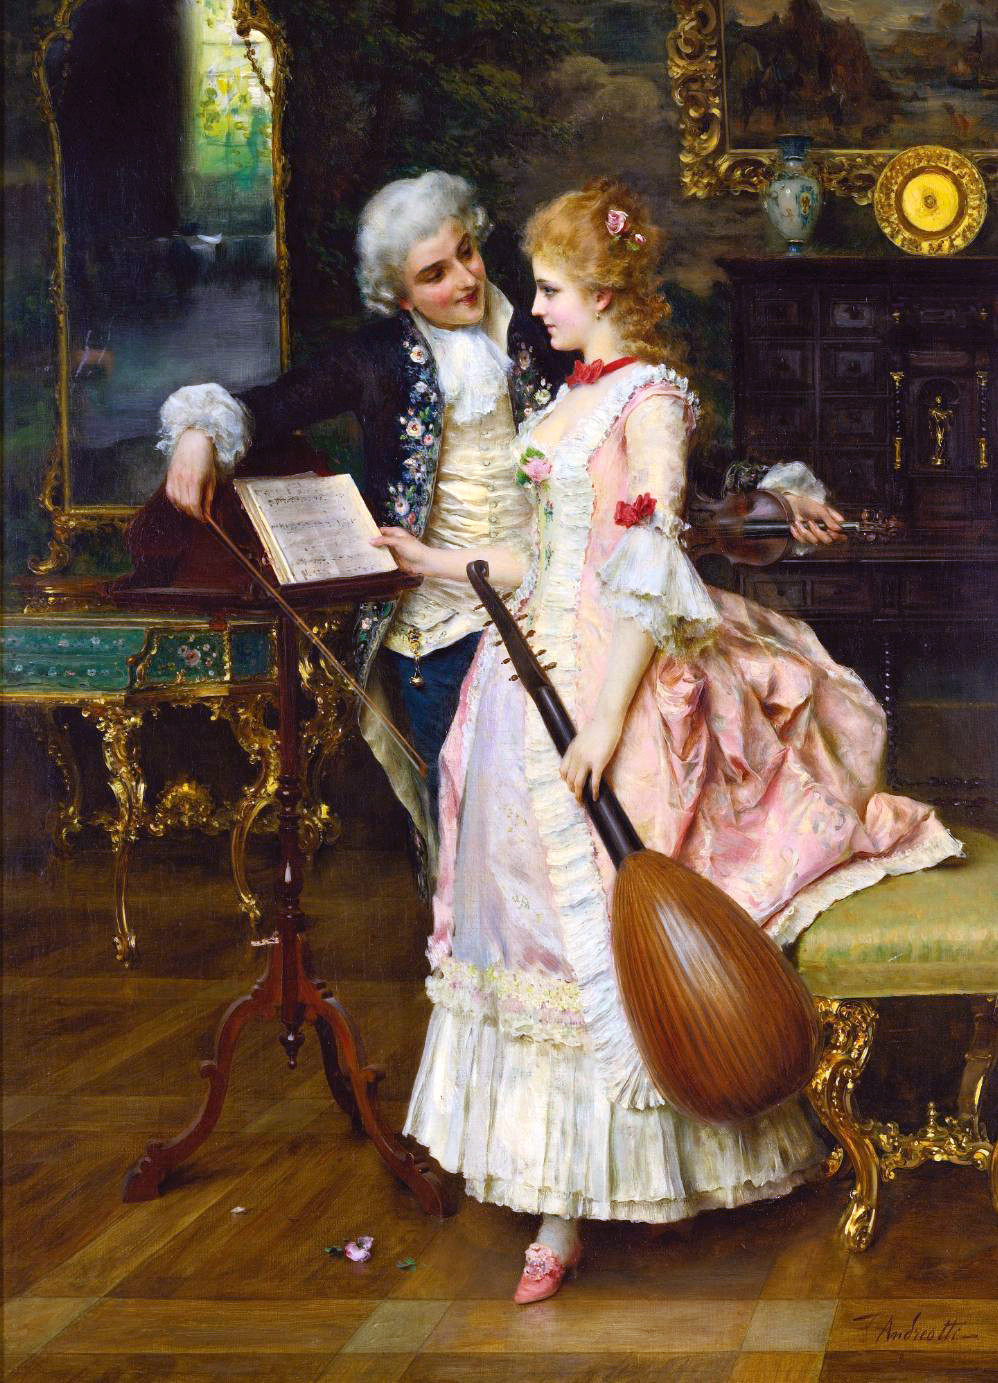 The Interlude by Frederico Andreotti